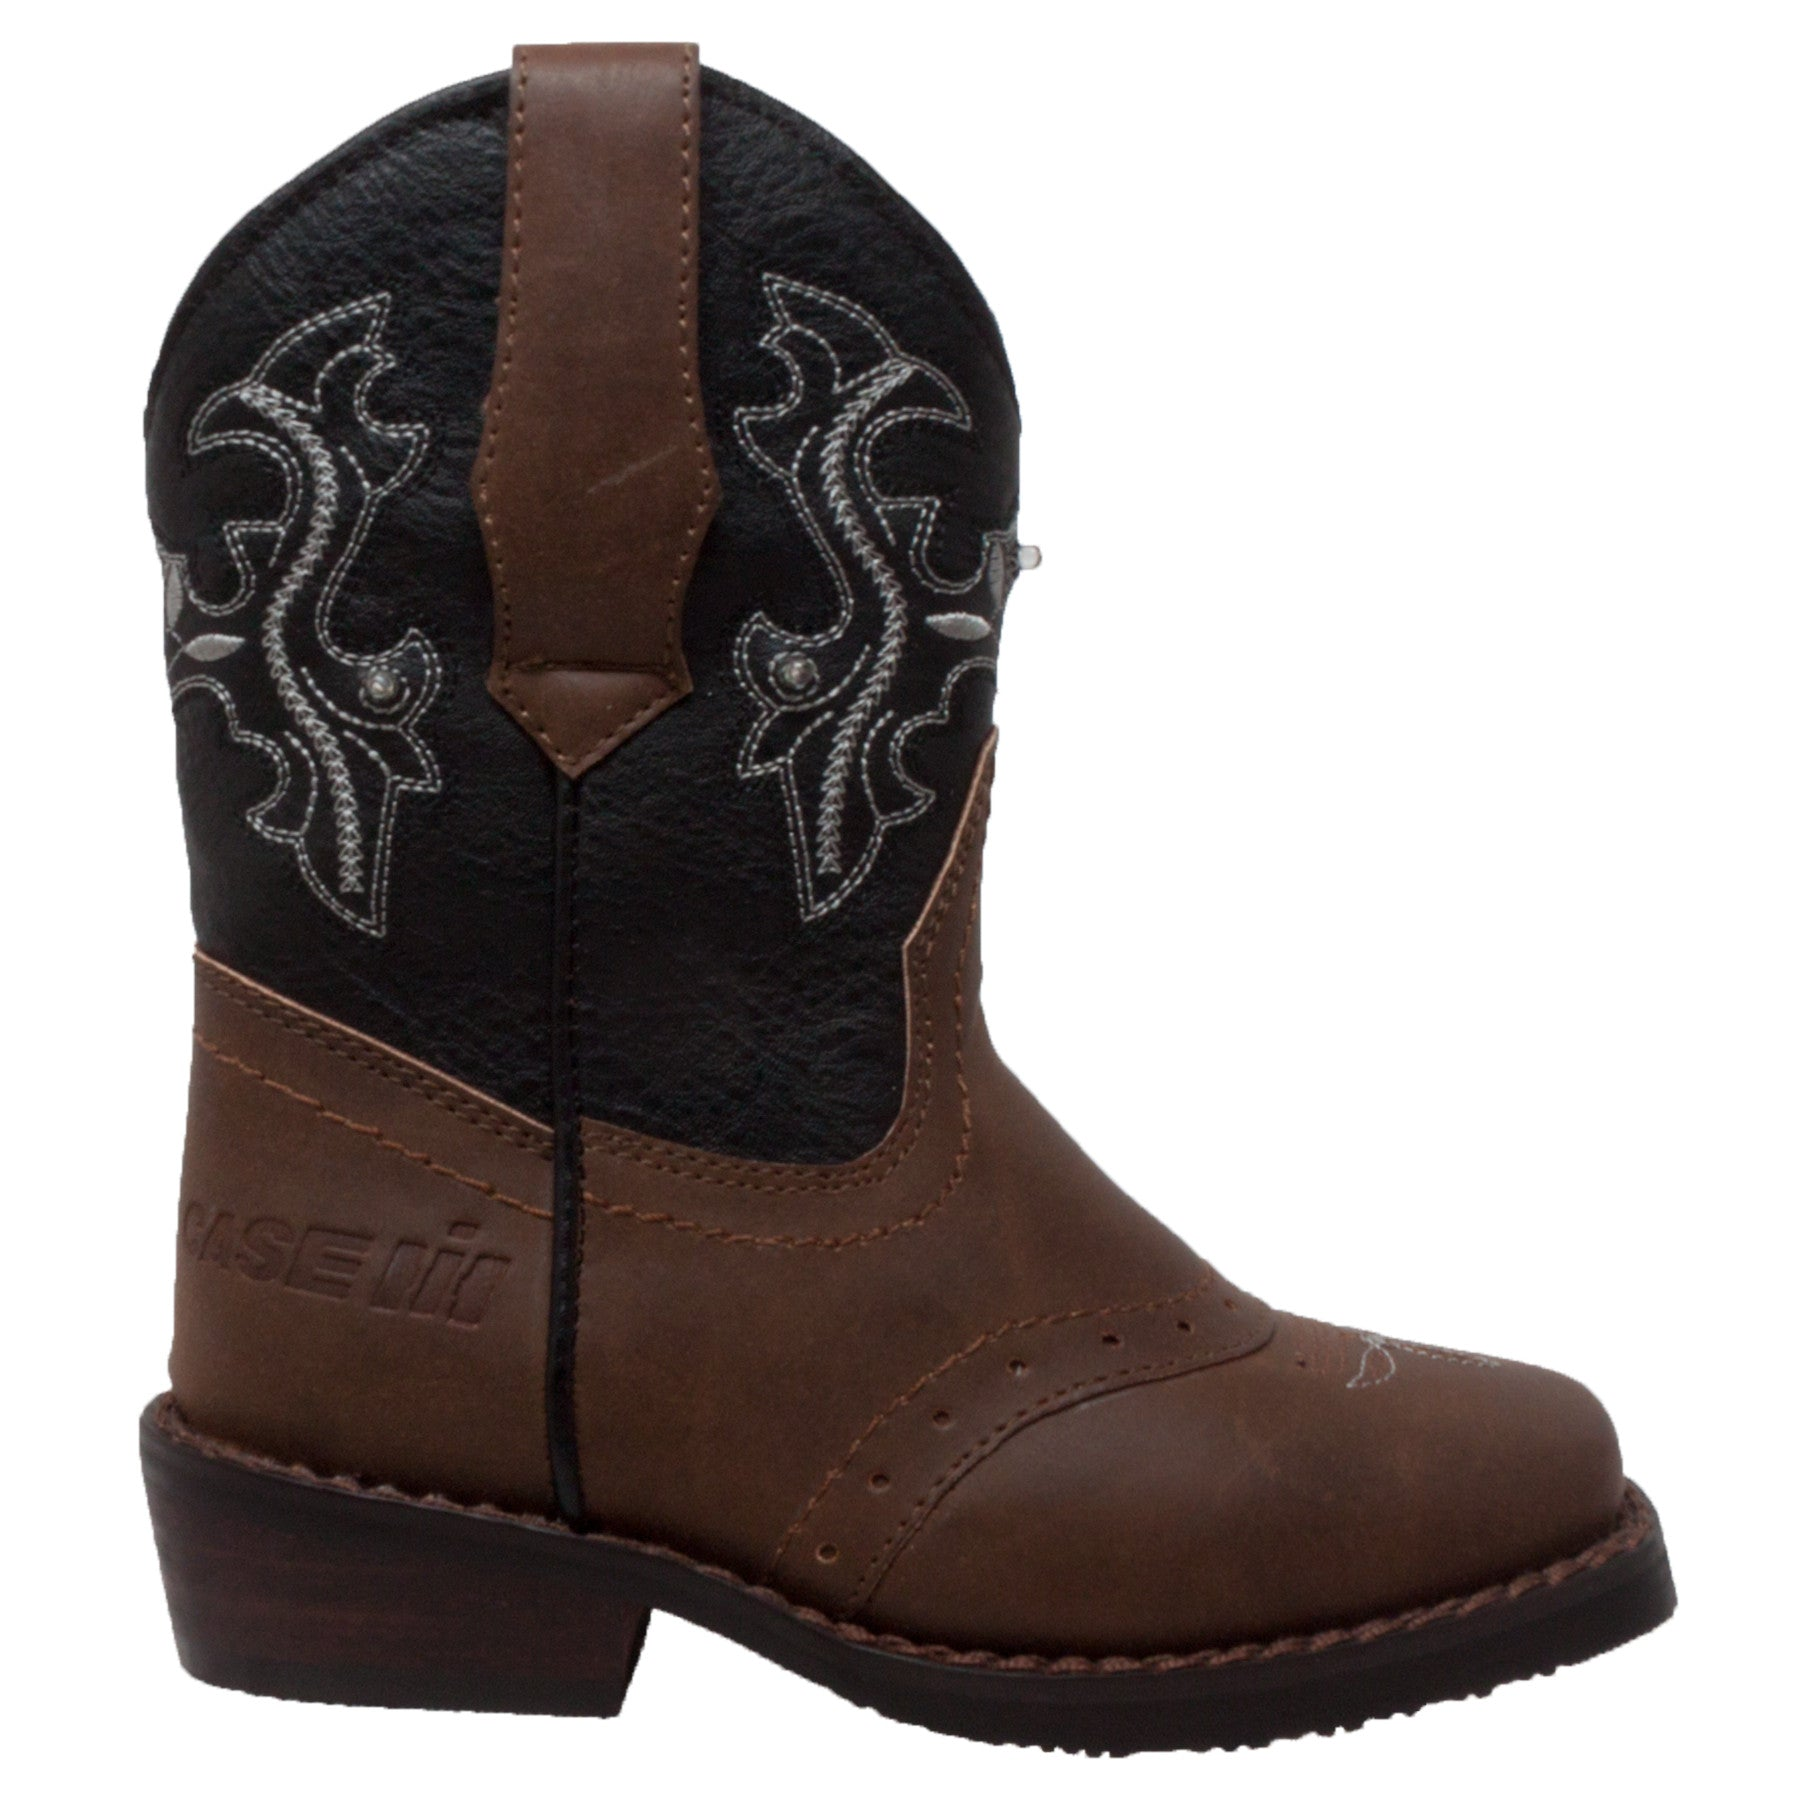 Toddler's Western Light Up Boot Brown/Black - CI-5016 - Shop Genuine Leather men & women's boots online | AdTecFootWear